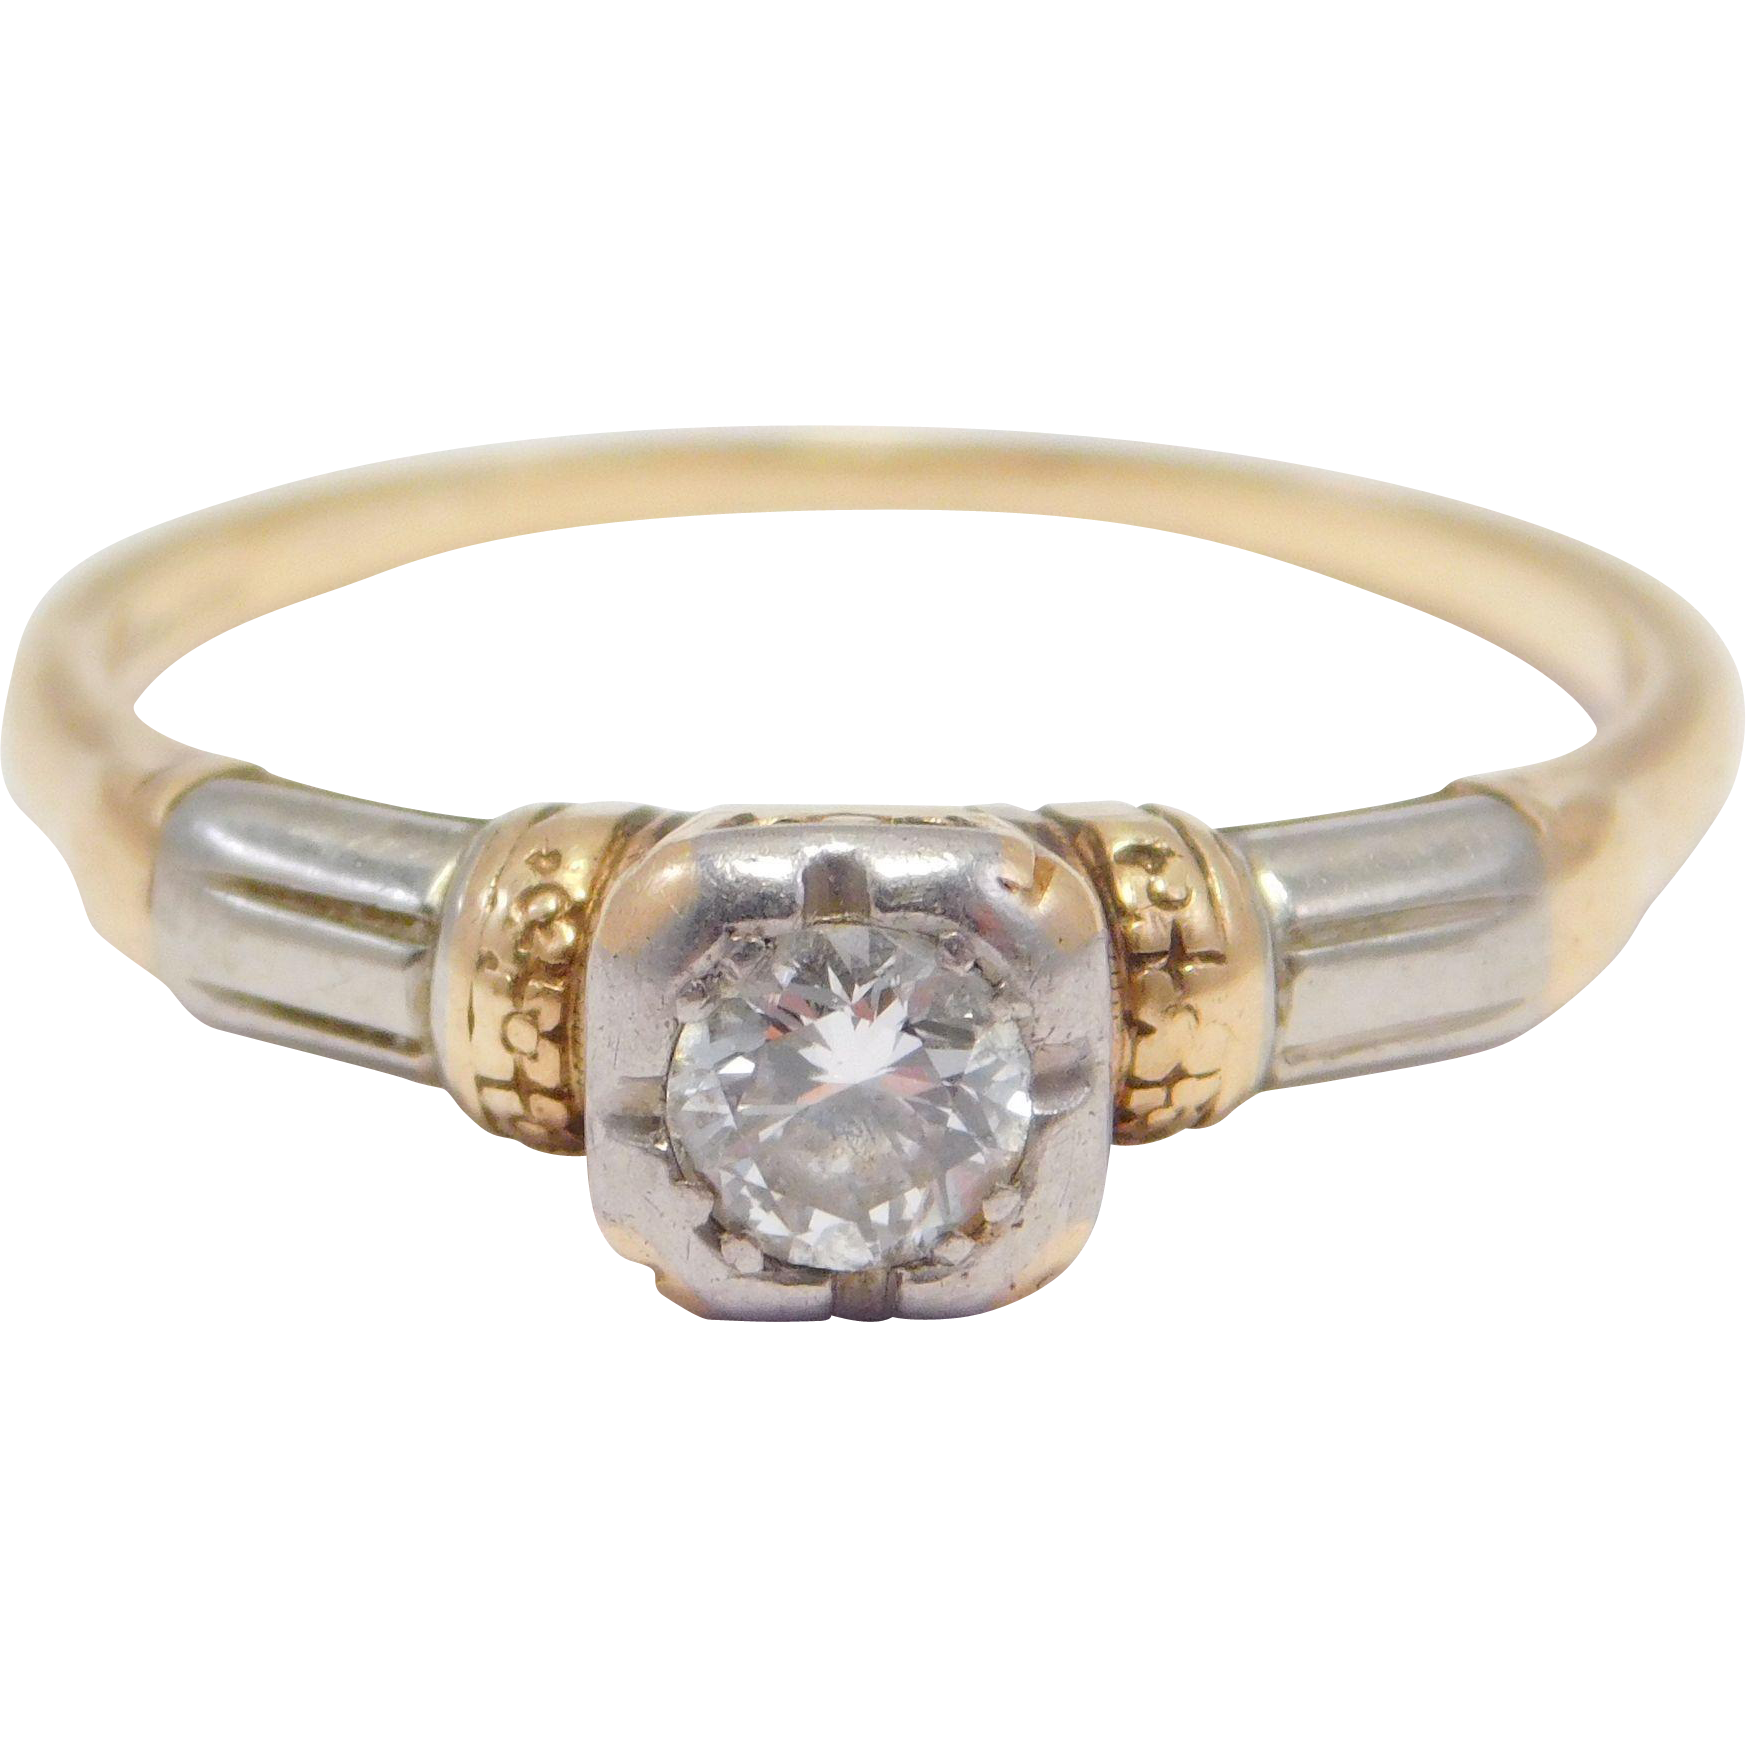 scale band by engagement diamond kattri the ring editor jewellery pearl large product gold subsampling false split and mizuki in yellow with a rings freshwater crop shop upscale asymmetry